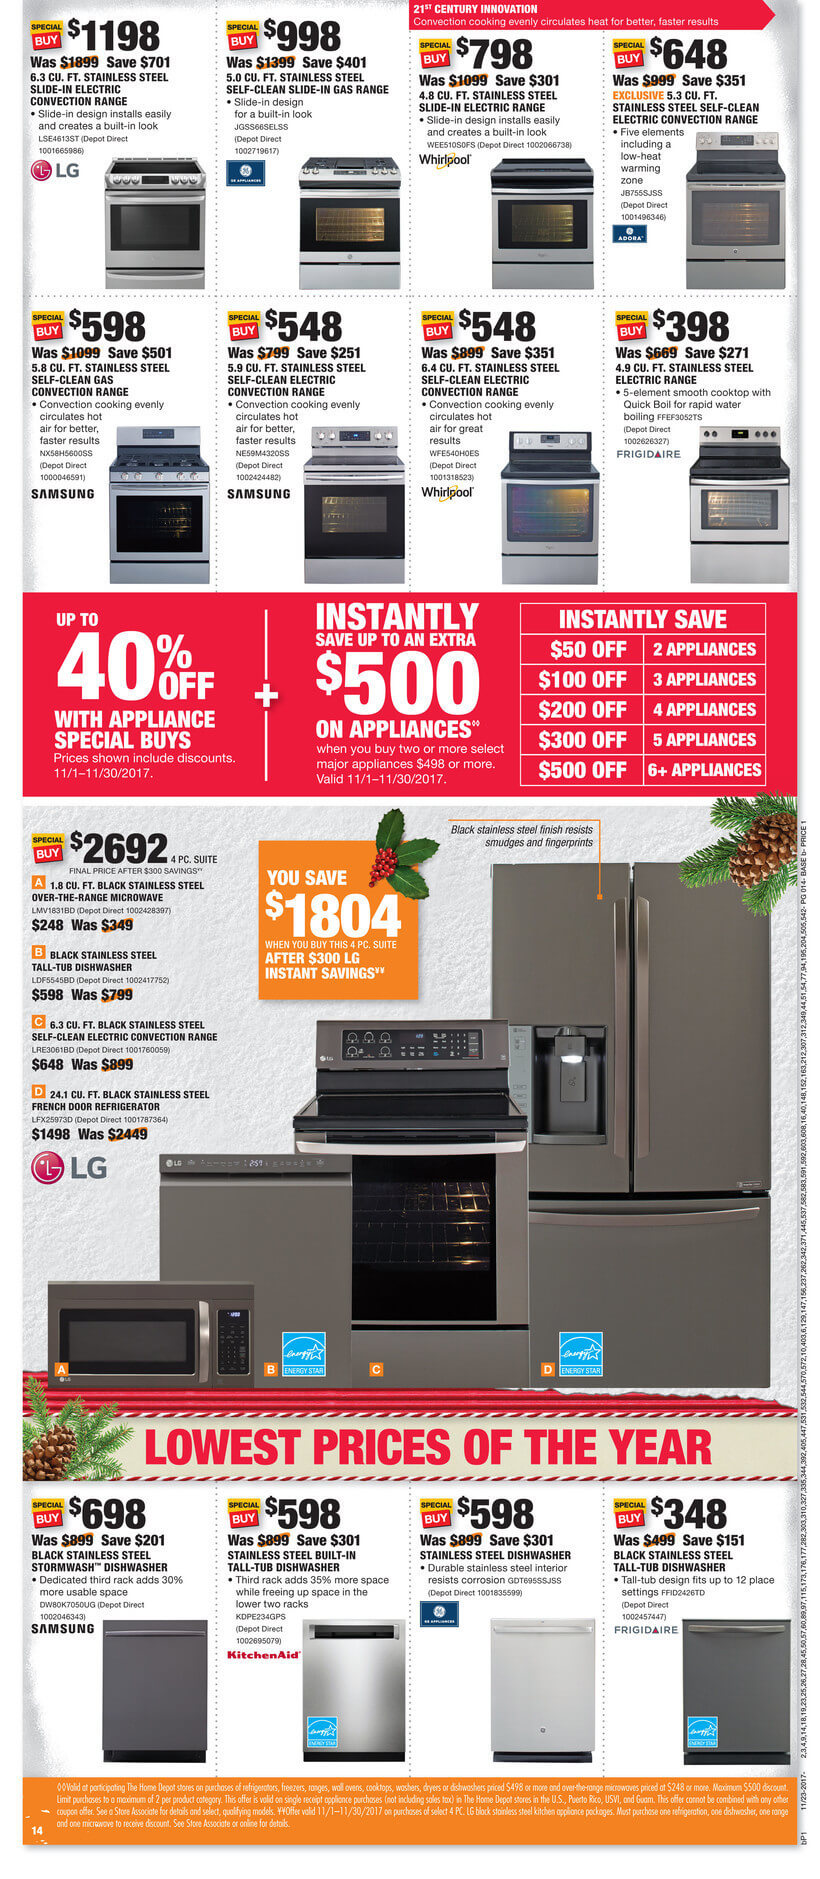 Appliance Buying Guide And Top Deals For Black Friday B Best Buy Black Friday Ad Washer Dryer